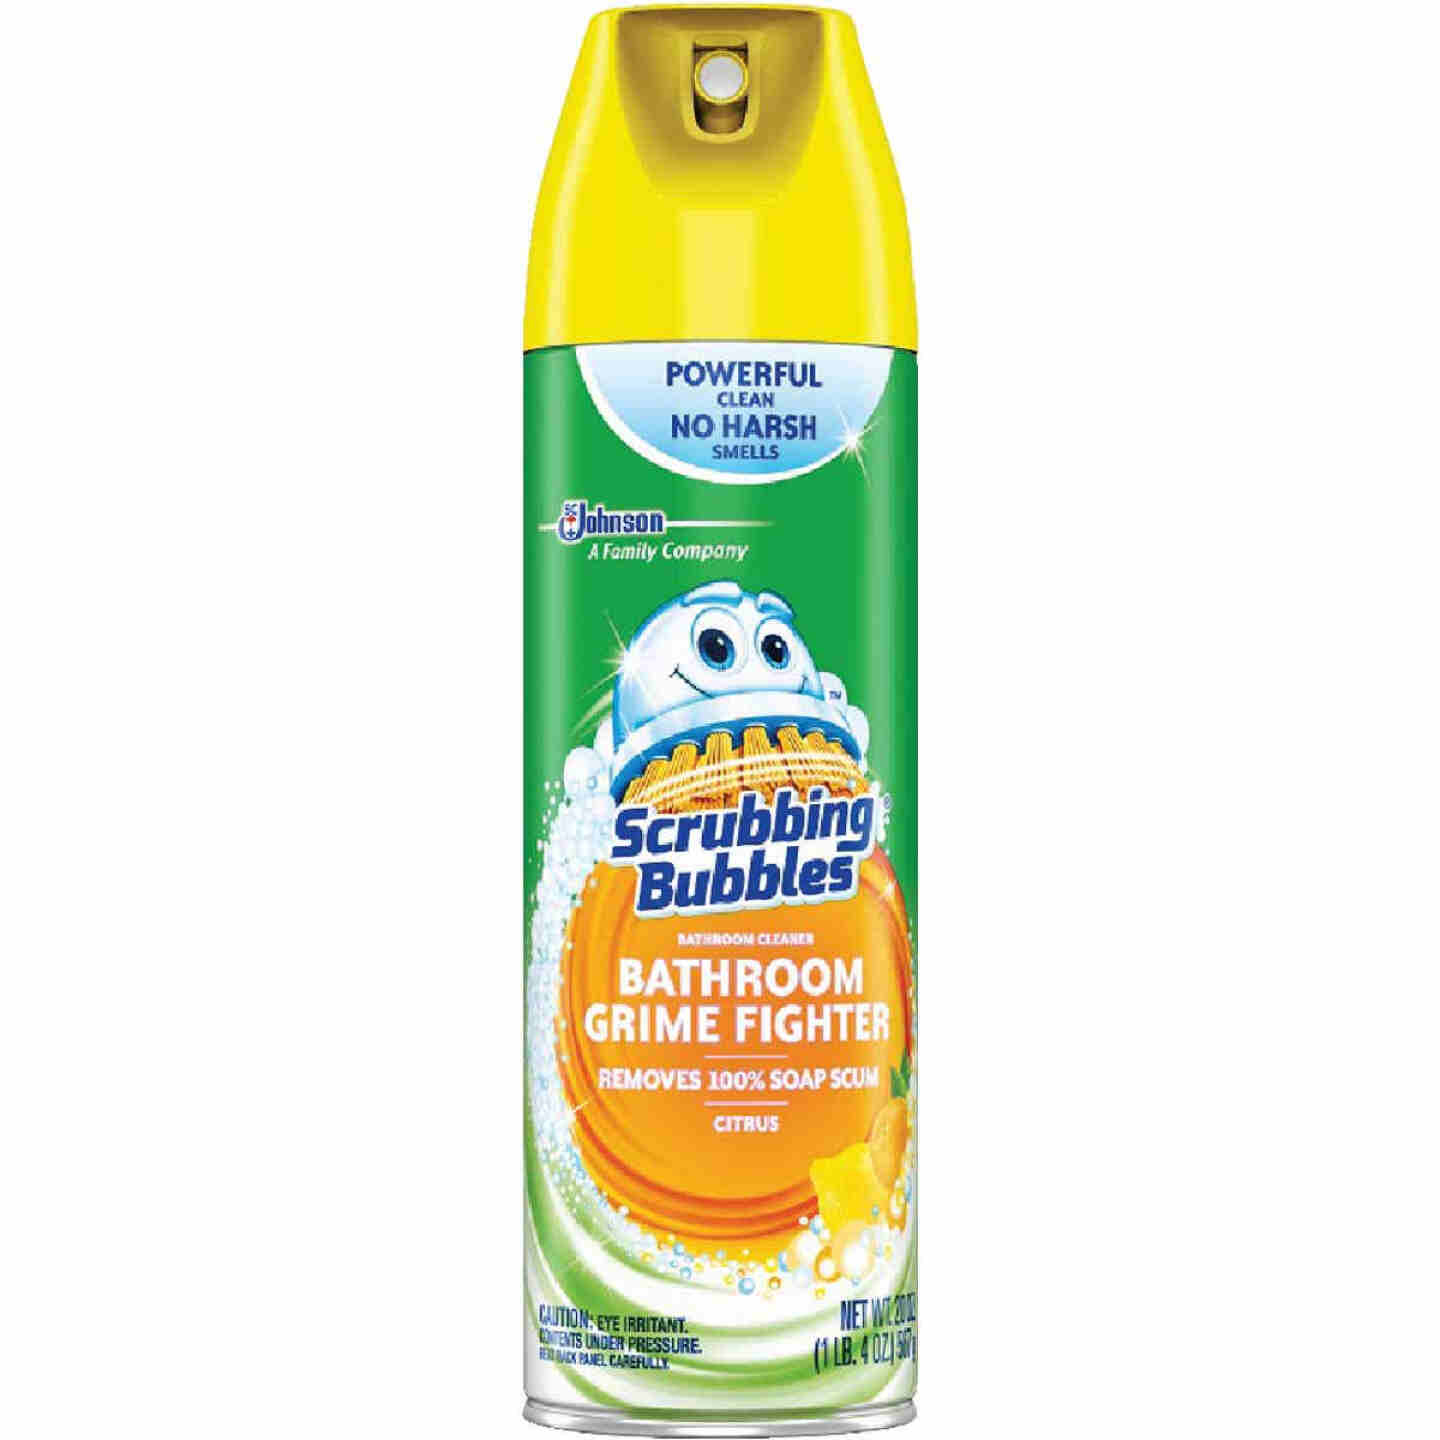 Scrubbing Bubbles 20 Oz. Citrus Disinfectant Penetrating Foam Bathroom Cleaner Image 1